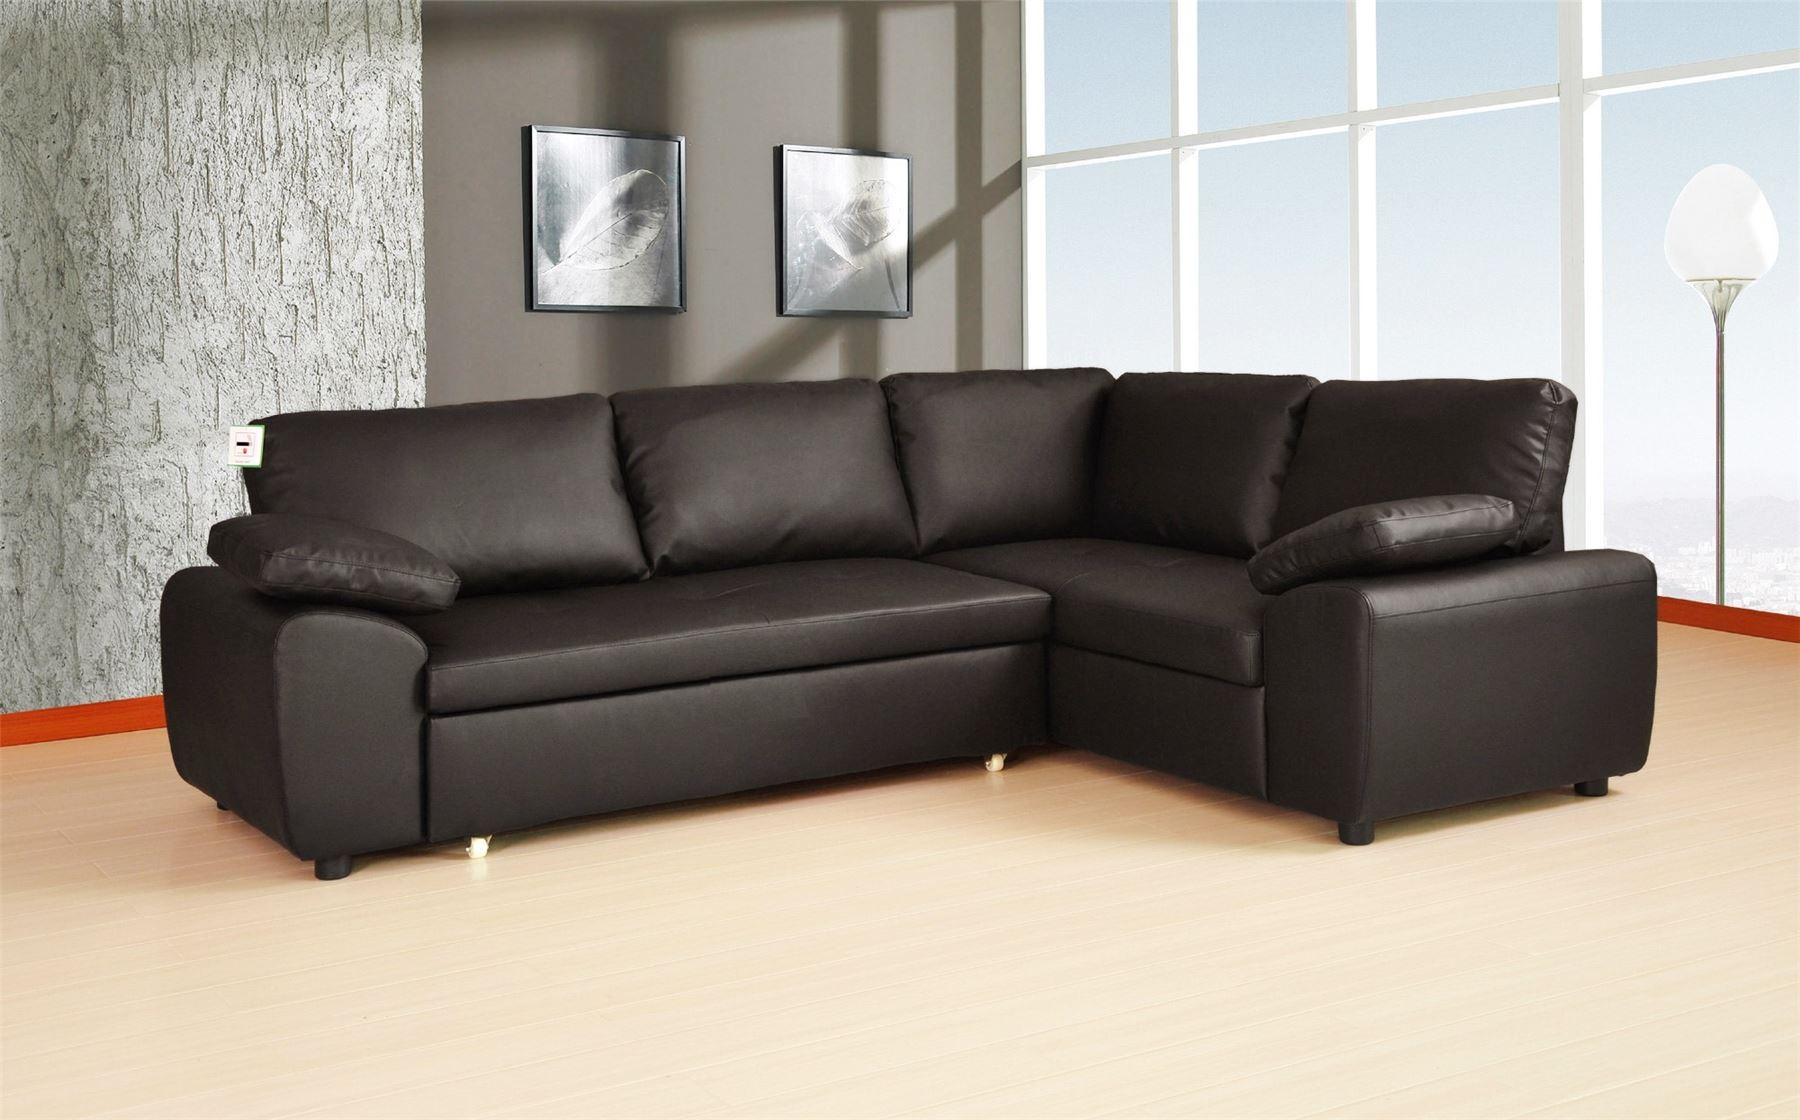 Corner sofa bed black leather spencer corner sofa bed with for Black corner sofa